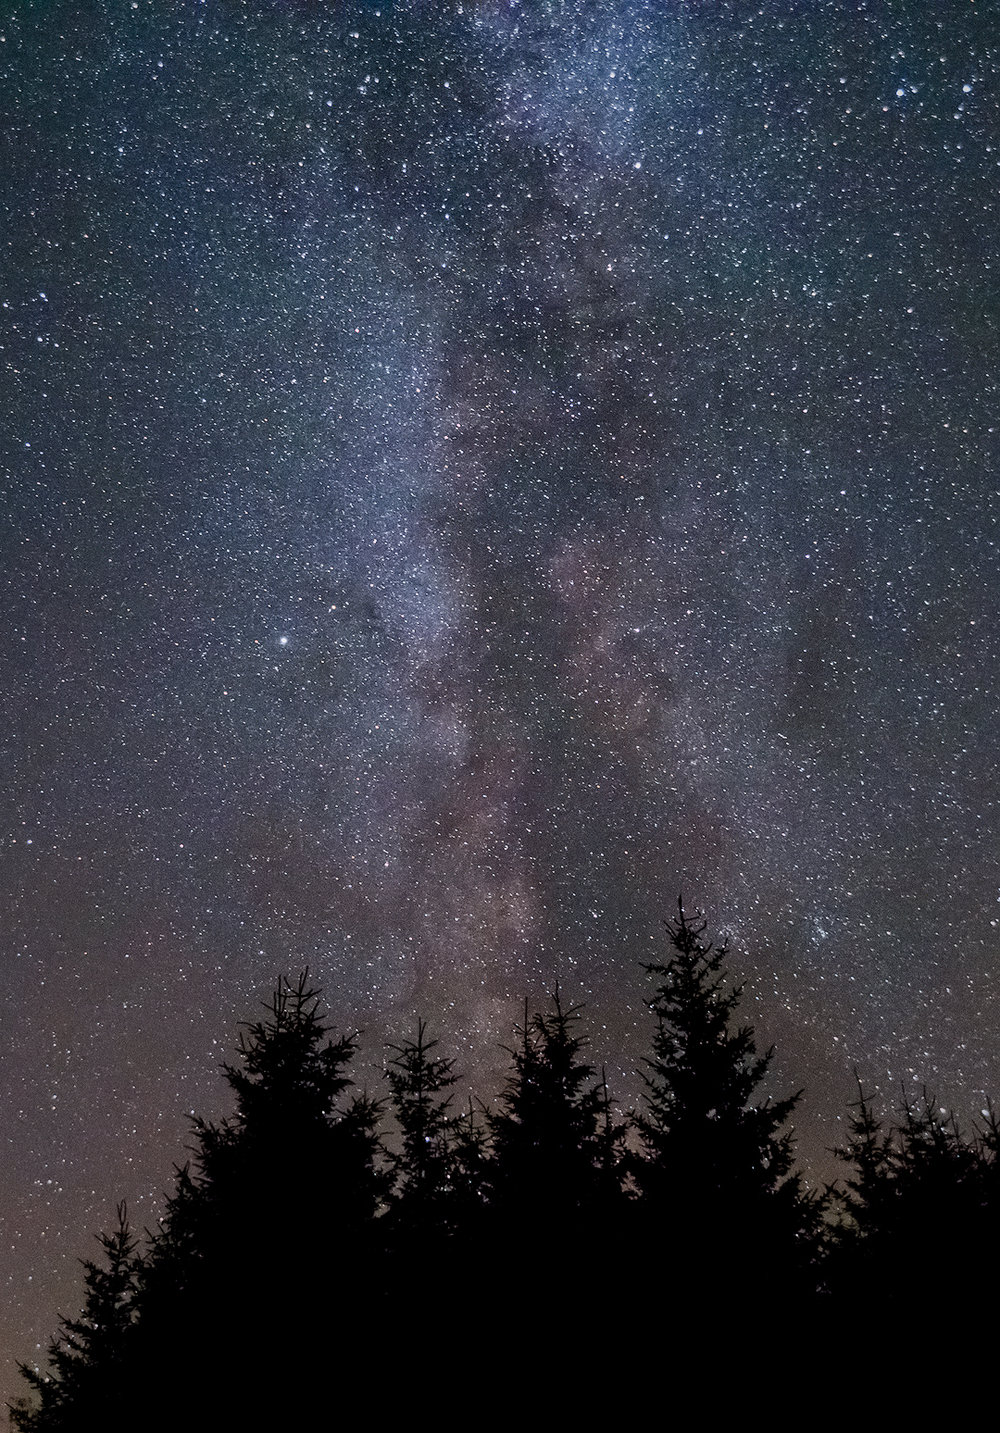 Milky Way Photography Dumfries and Galloway